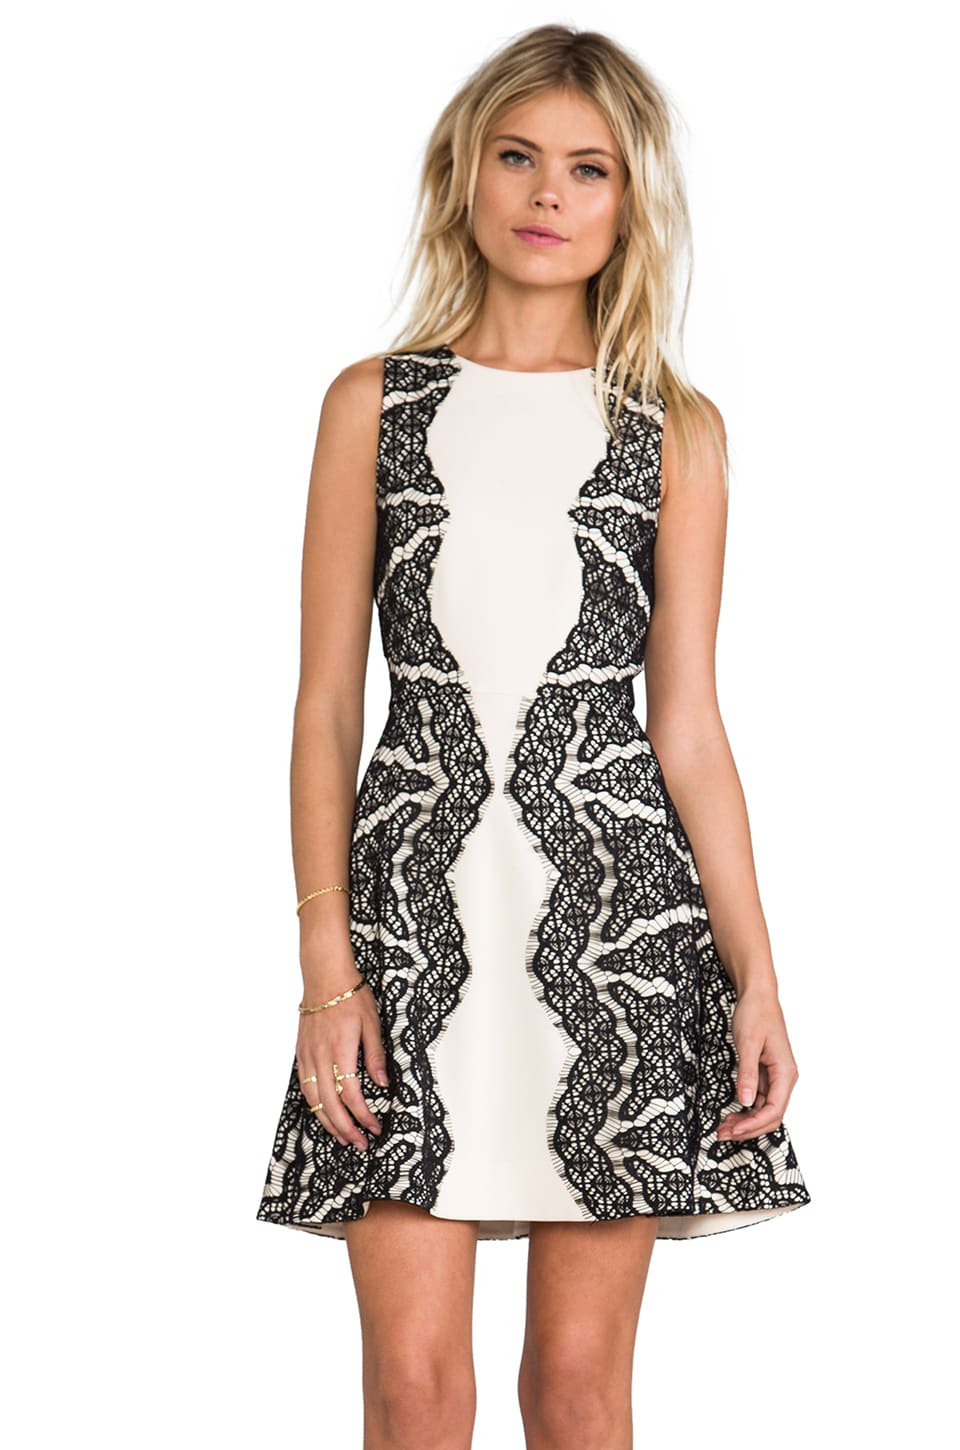 Diane von Furstenberg Daniella Dress in Ecru/Black